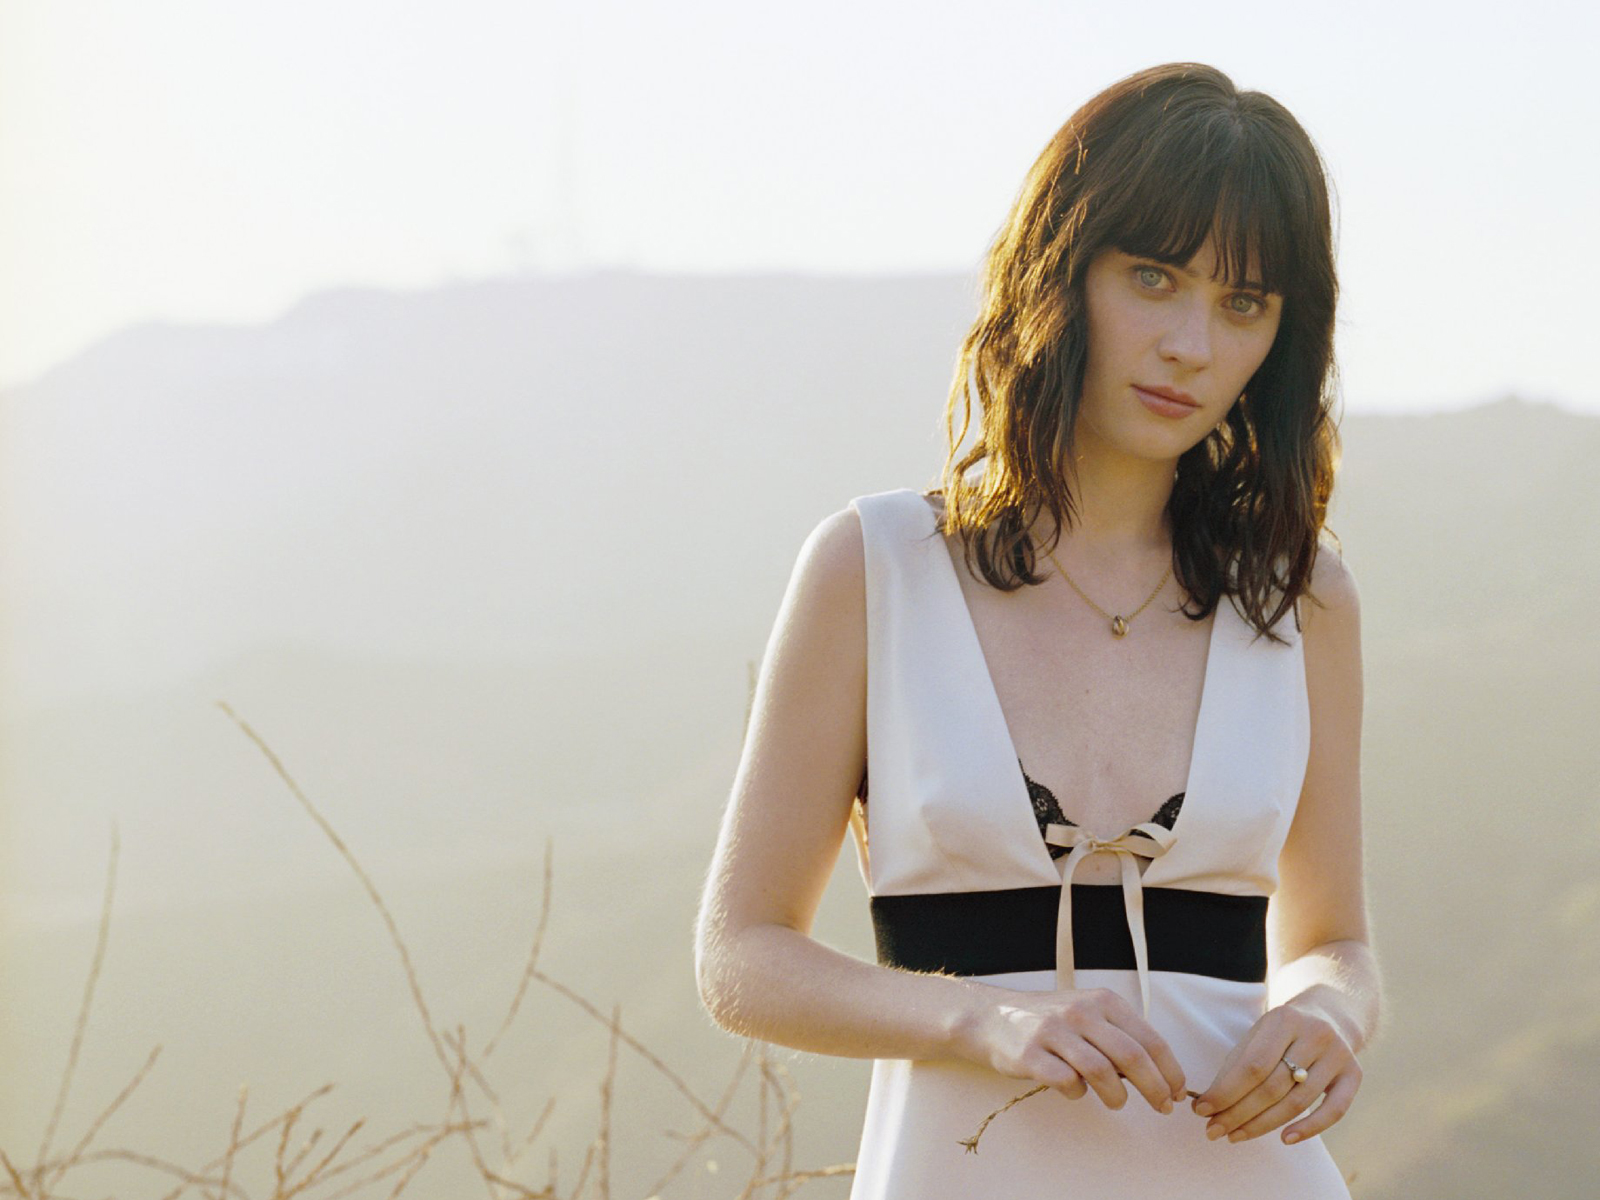 sexy zooey deschanel hd wallpapers high quality all hd